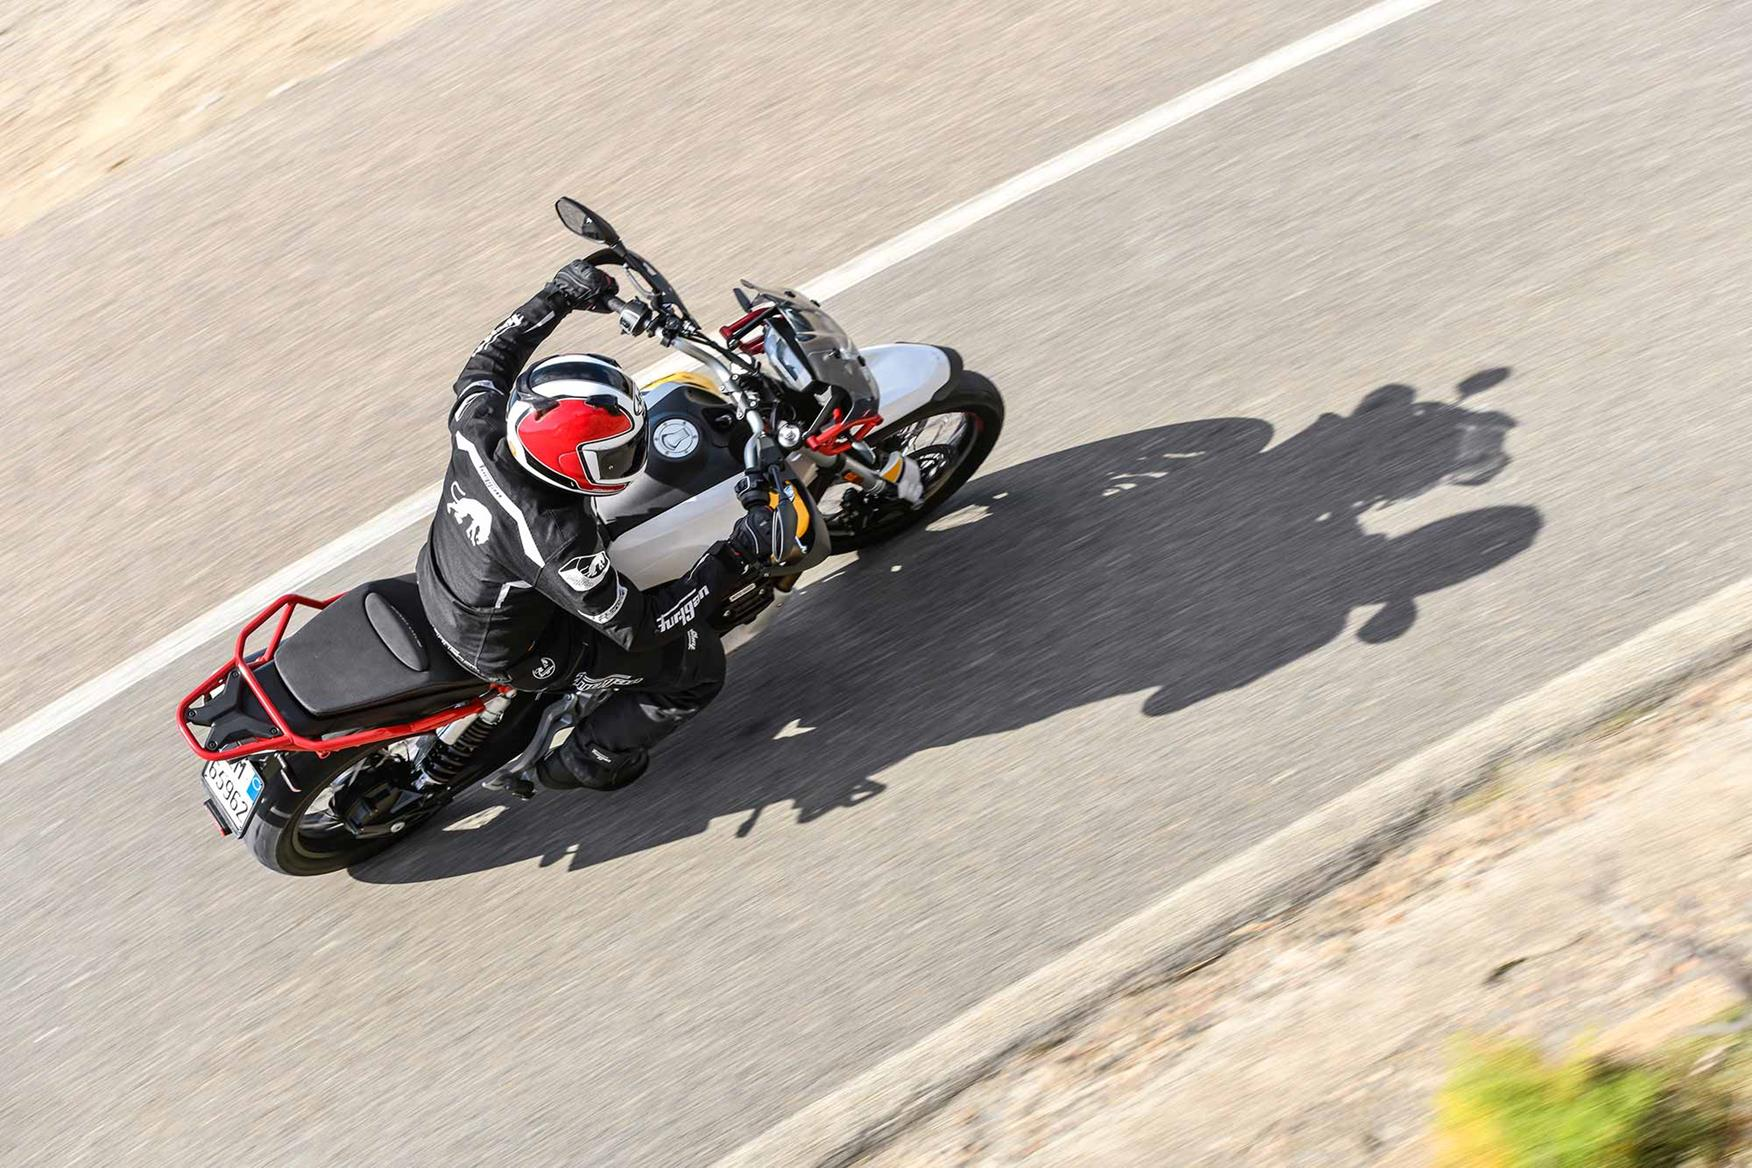 Cornering on the Moto Guzzi V85TT